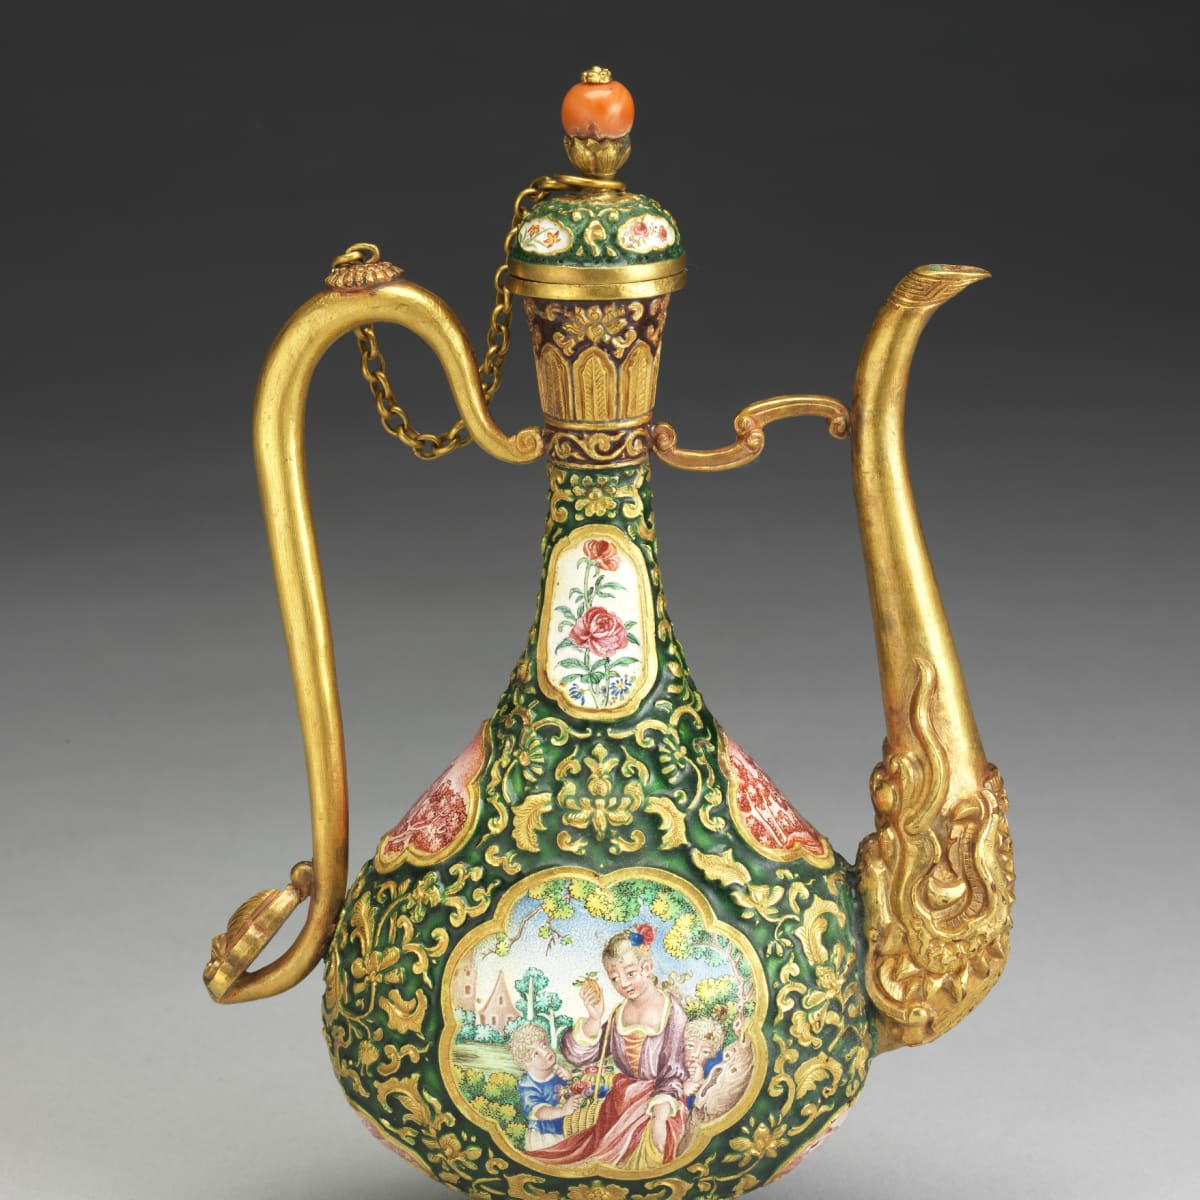 Champleve ewer with European figures in landscape, Qing Dynasty at Museum of Fine Arts, Houston